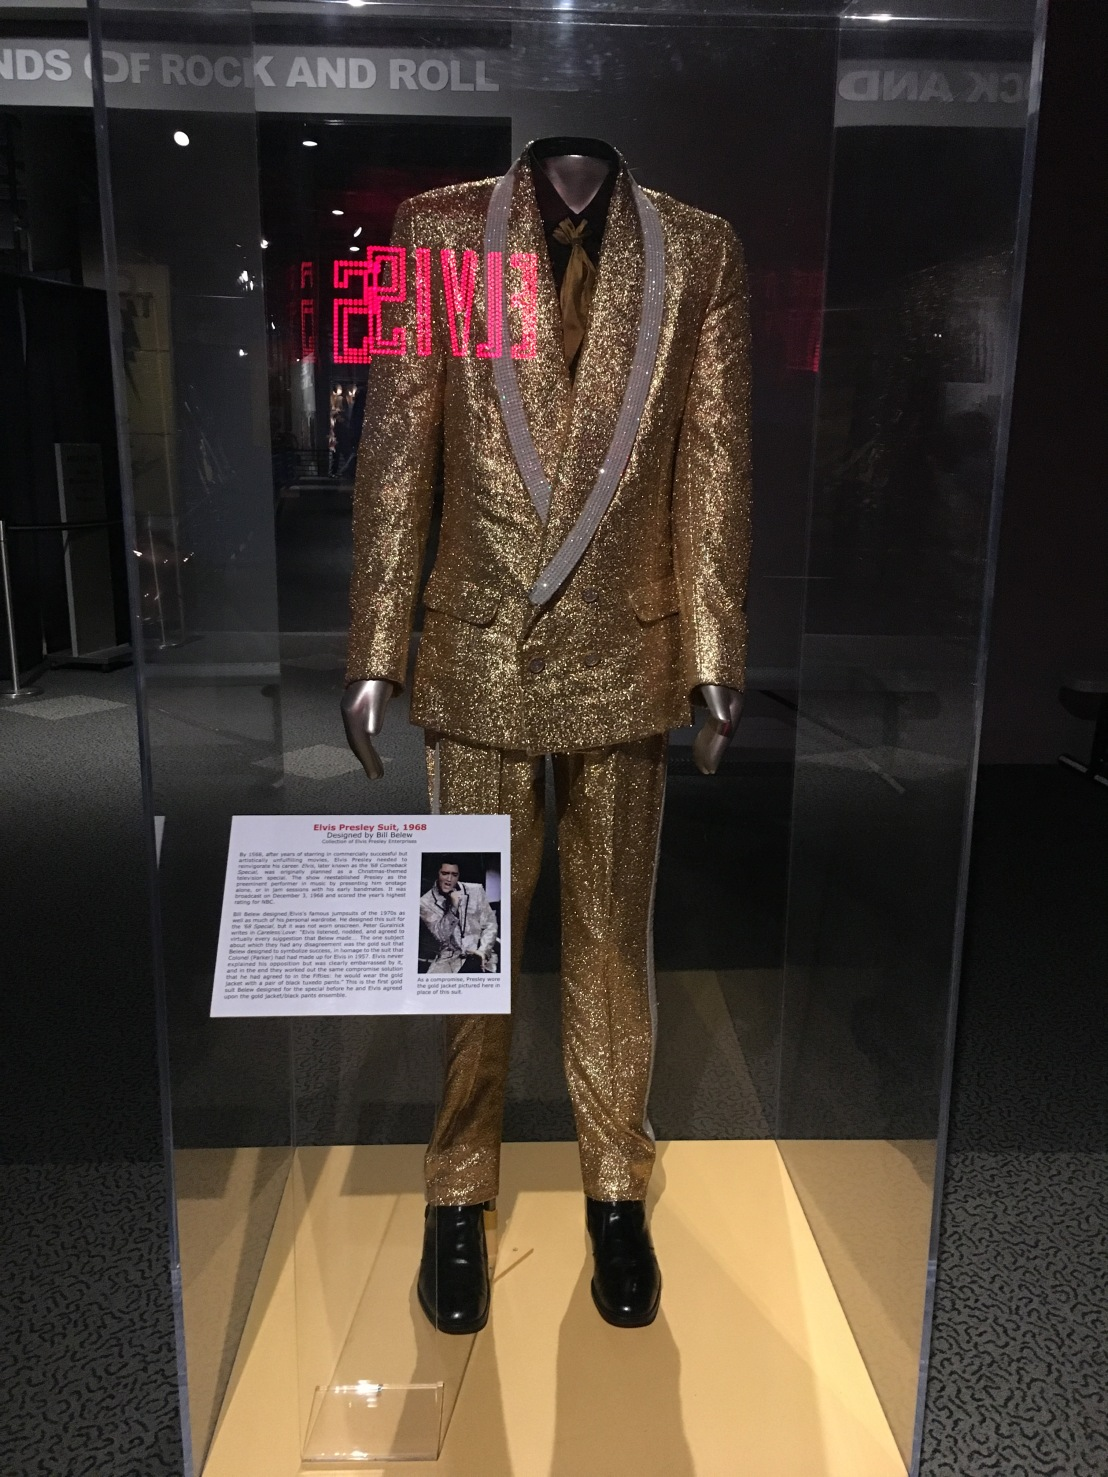 Rock and Roll Hall of Fame 39